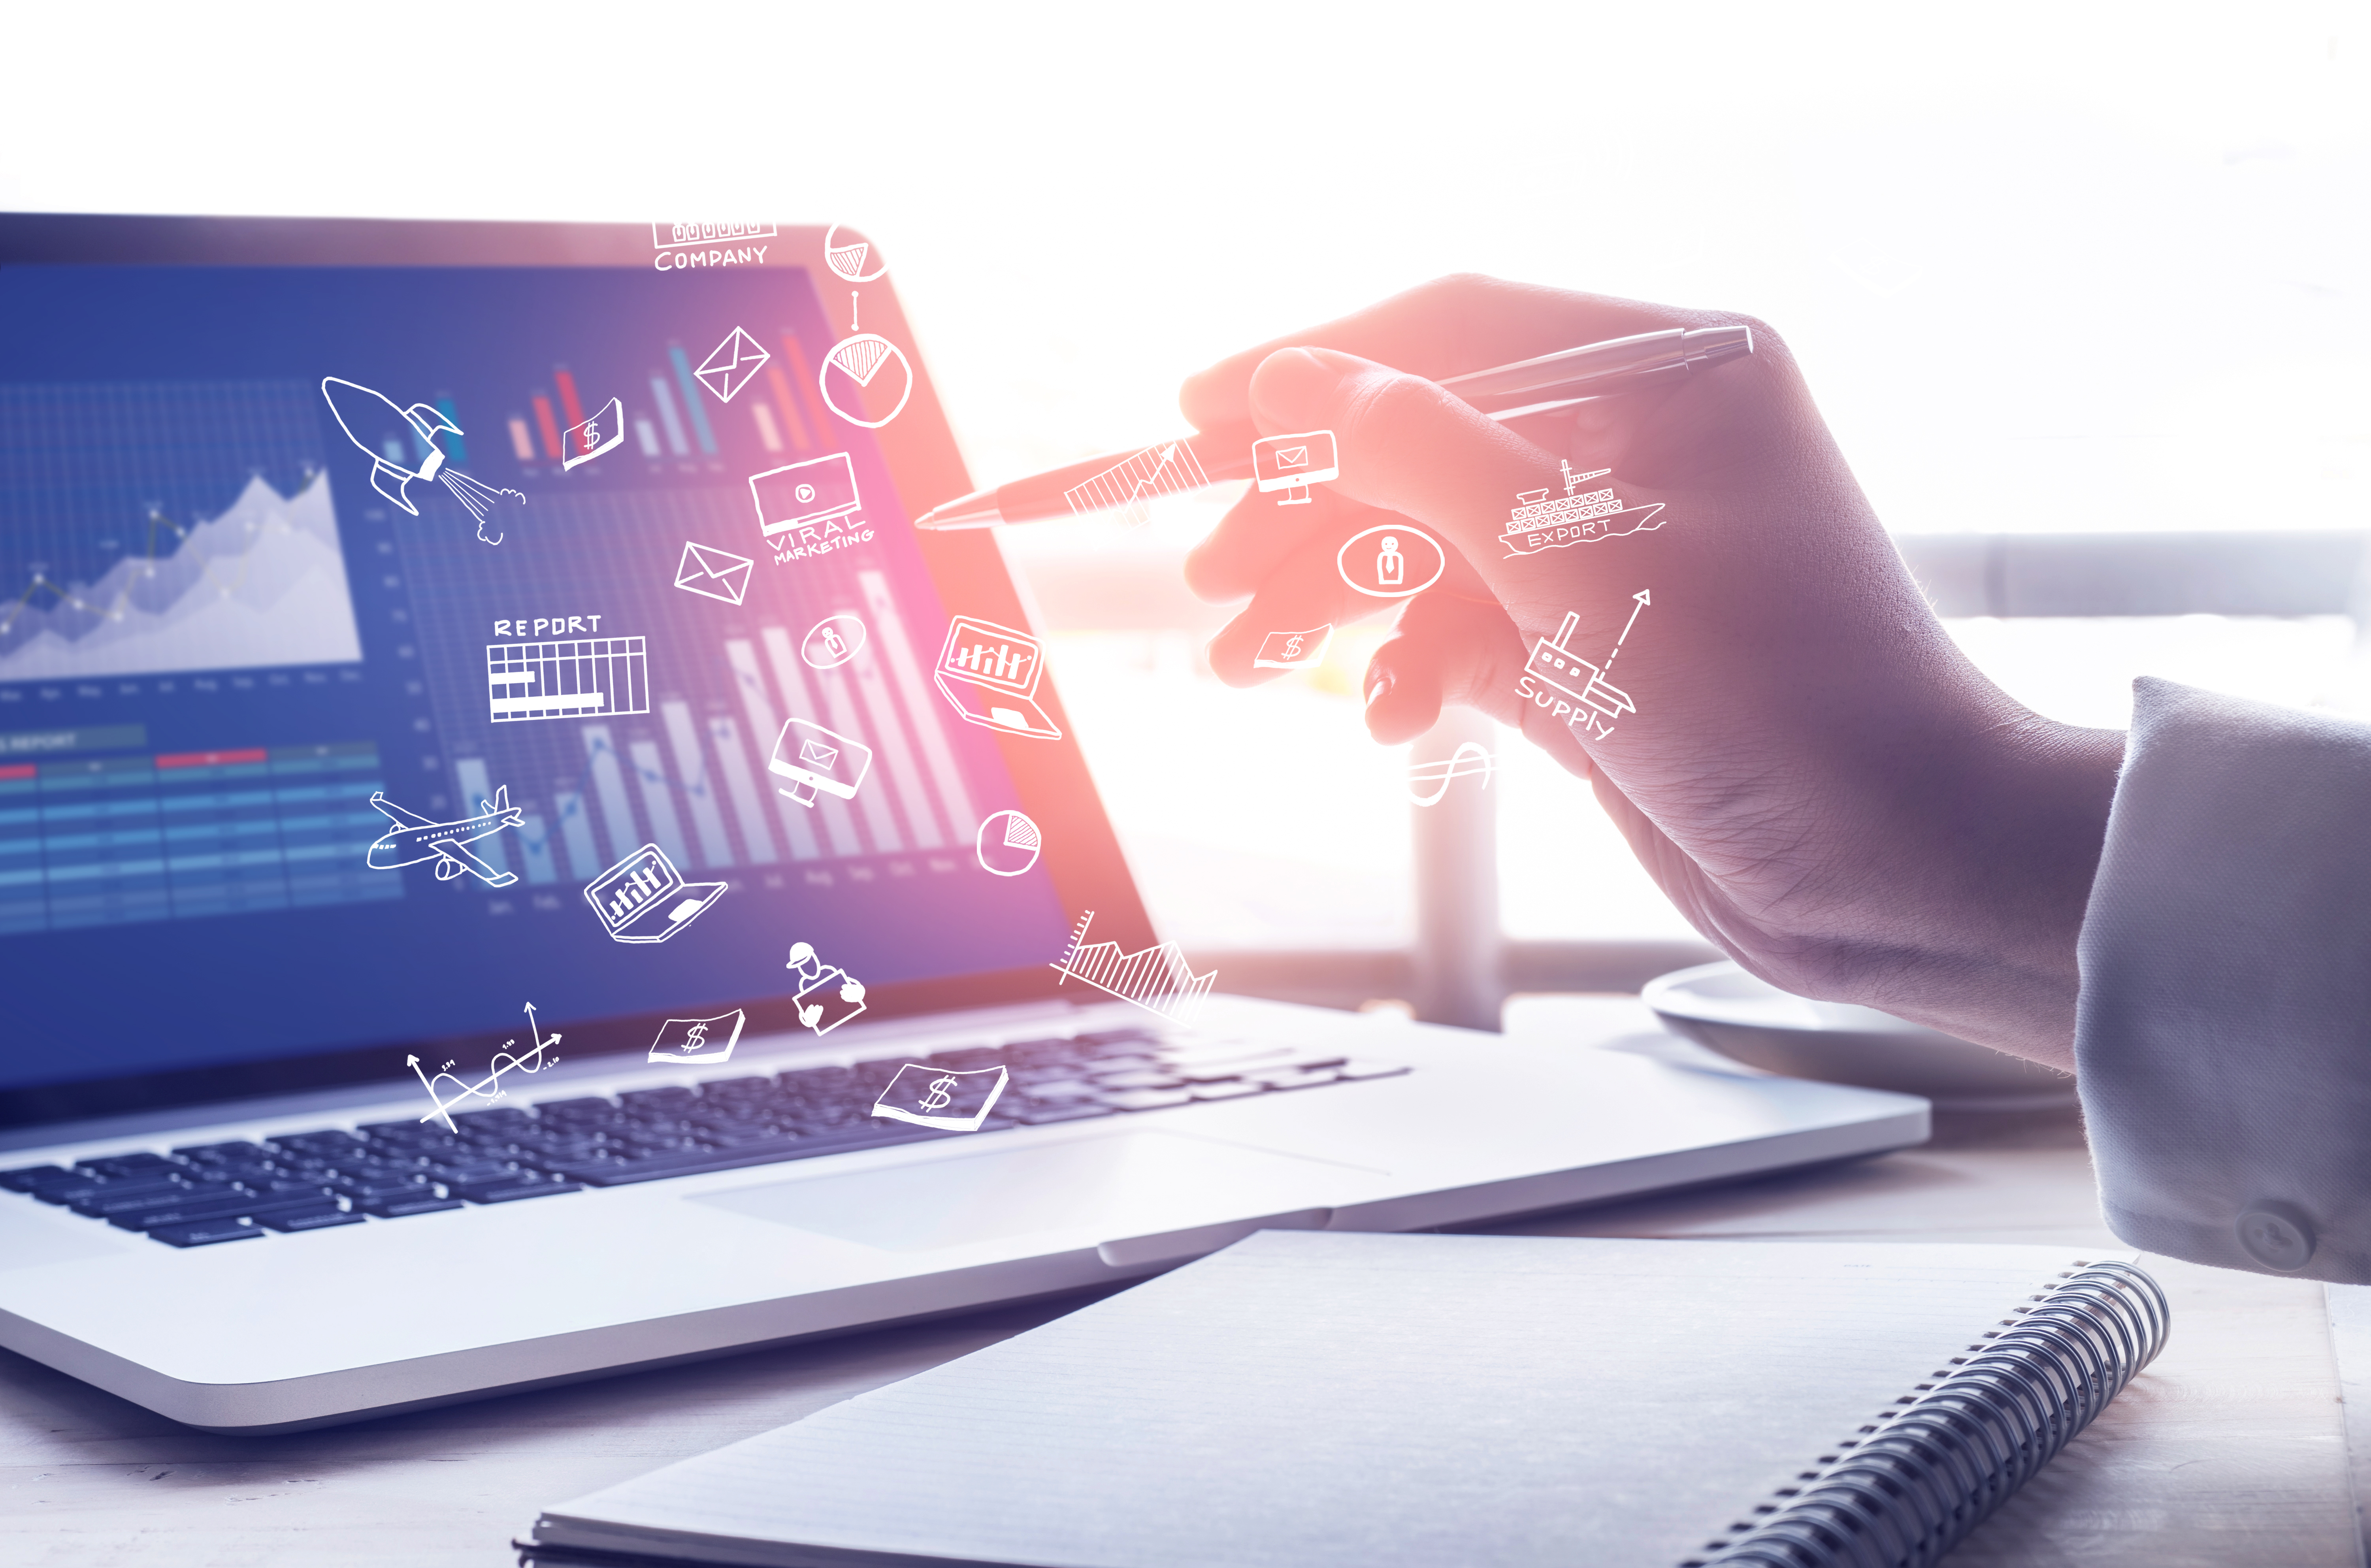 Businessman using modern laptop with graph.Business startup.Analyze strategy conceptsBusinessman using modern laptop with graph.Business startup.Analyze strategy conceptsStrategy text with business icon on modern laptop screen with graph chart background.marketing success and goals concept ideas